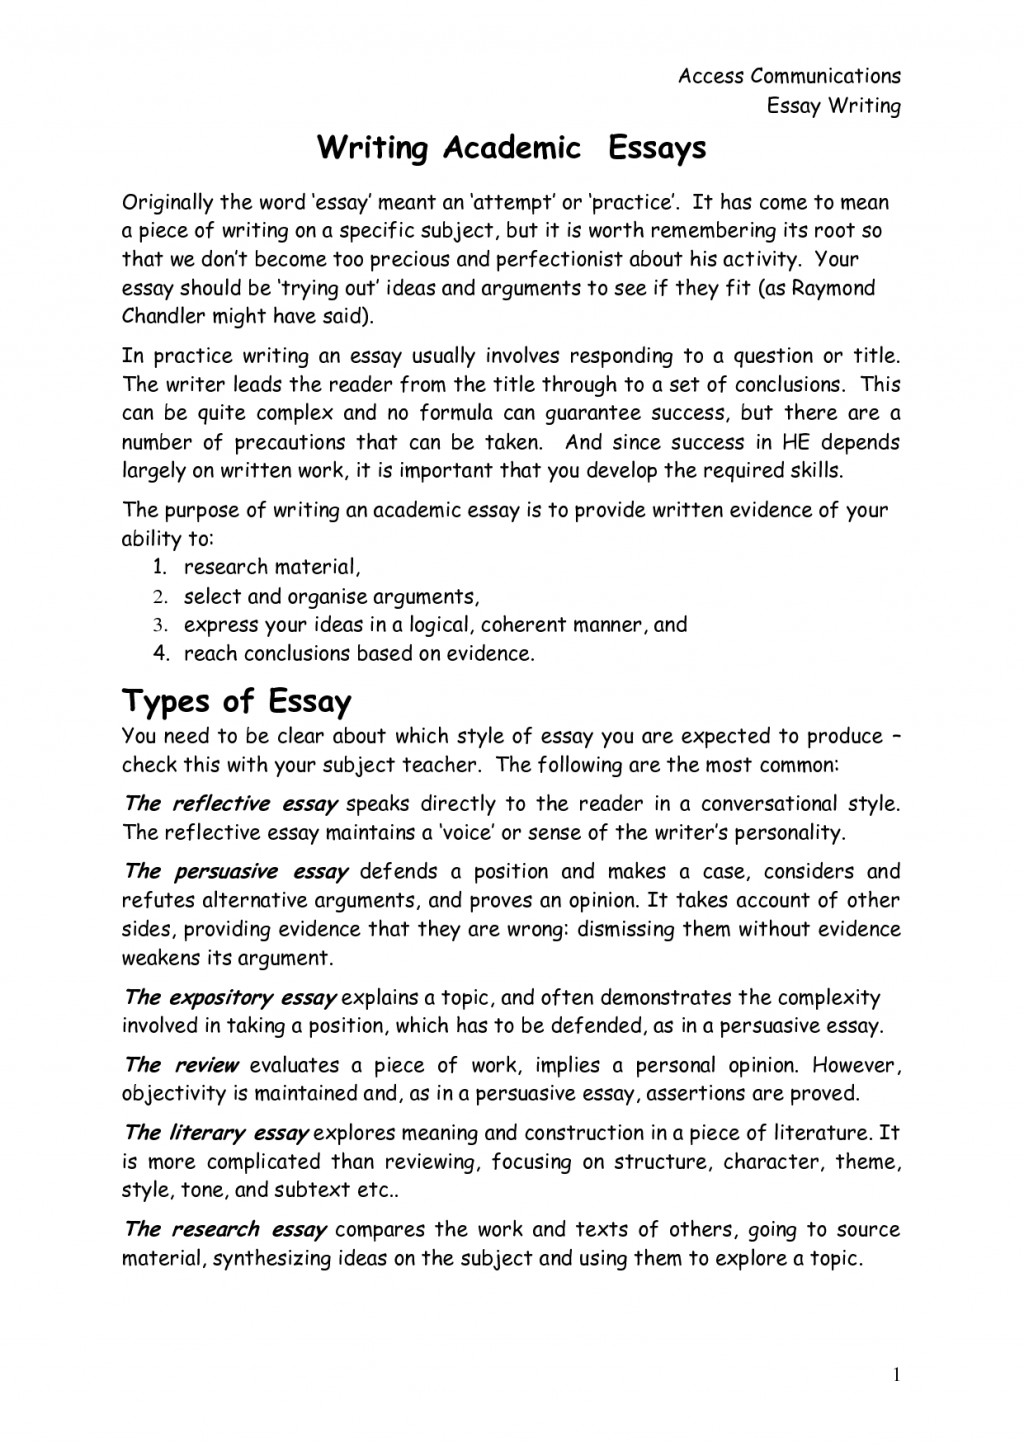 013 Reflective Essay On Academic Writing Englishs Fantastic English Examples Pdf Sqa Higher Personal National 5 Large